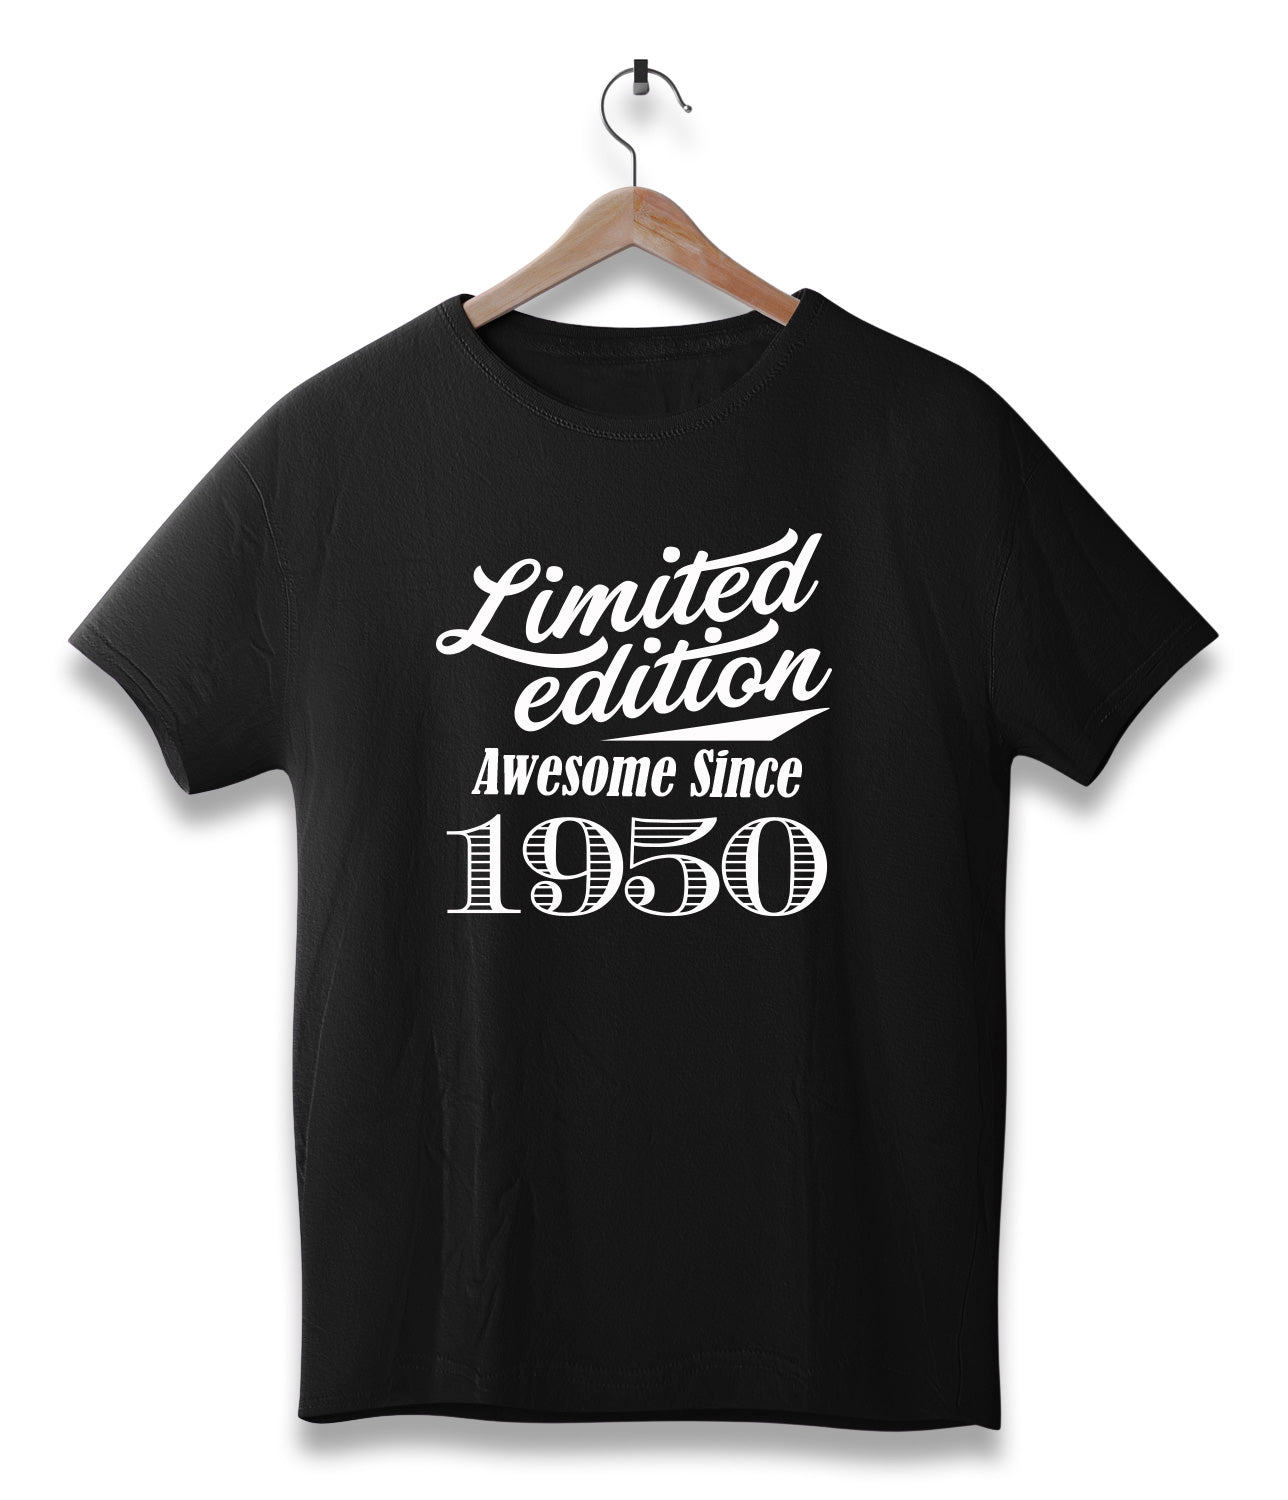 Limited edition awesome since 1950